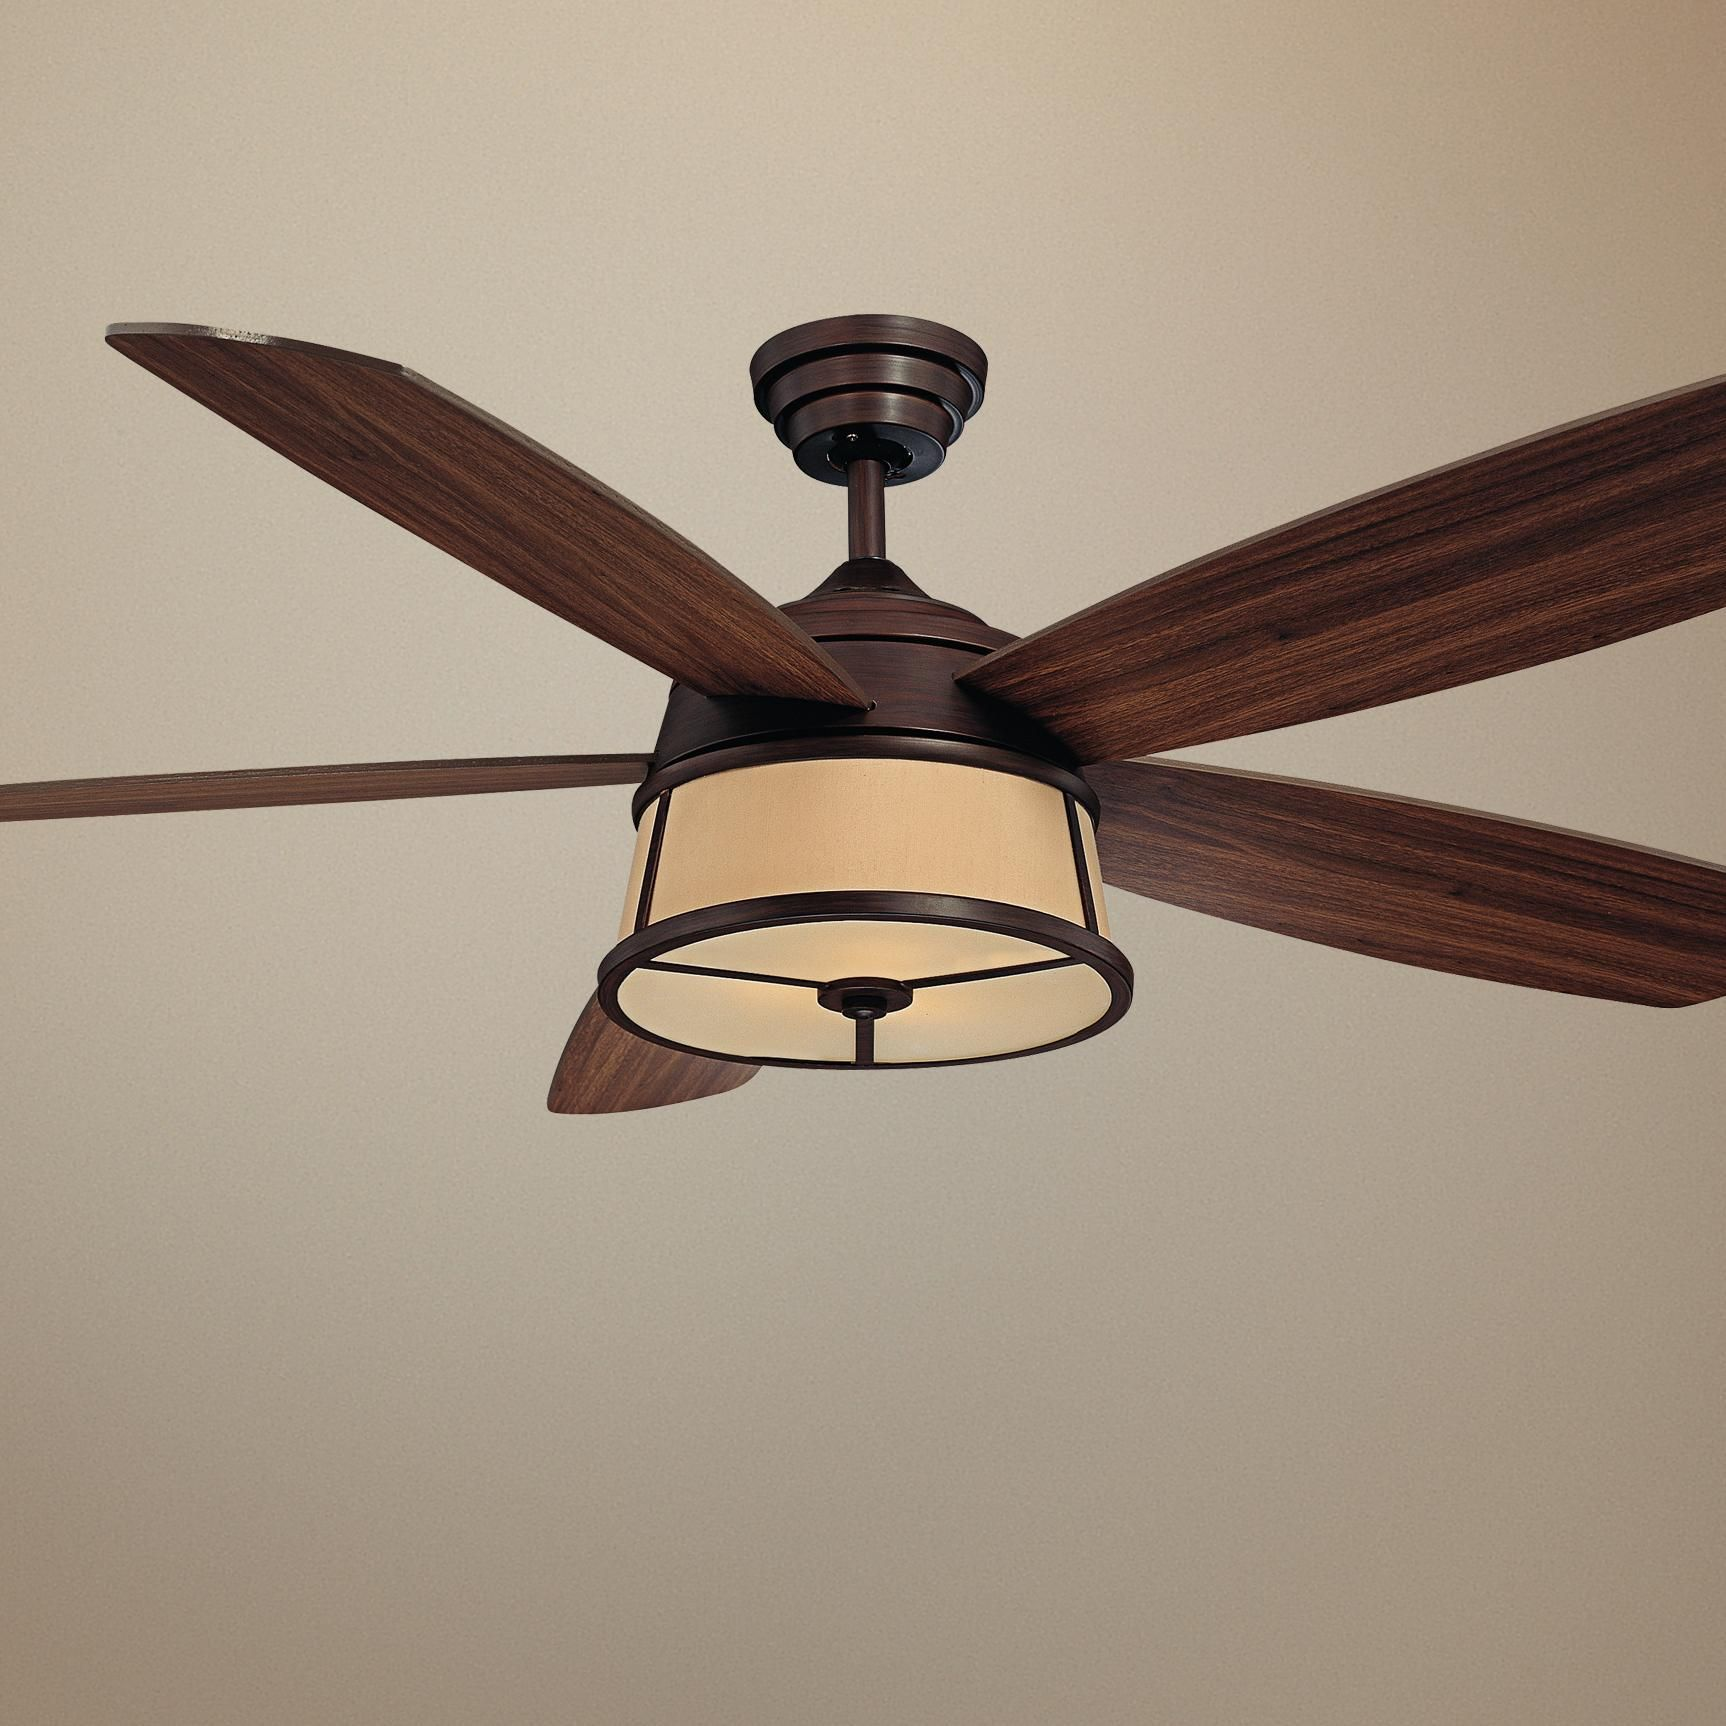 craftsman crafts style fan tulum ceiling craft ceilings and smsender period arts co fans